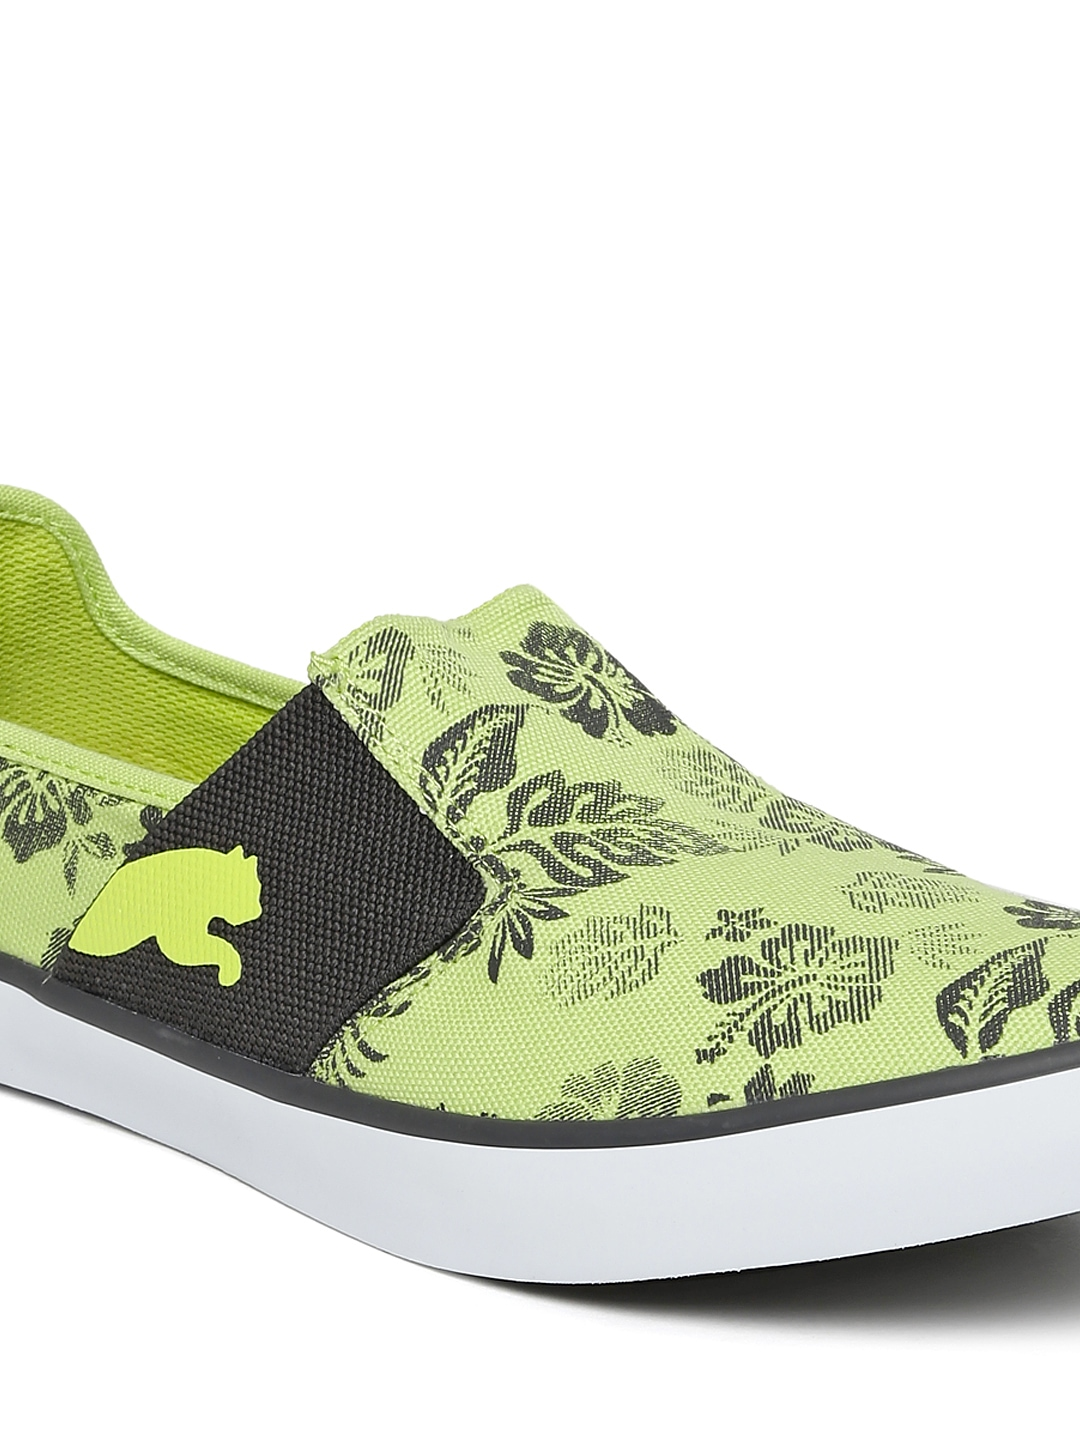 c8bed8304a1 puma slip ons 2016 women cheap   OFF46% Discounted